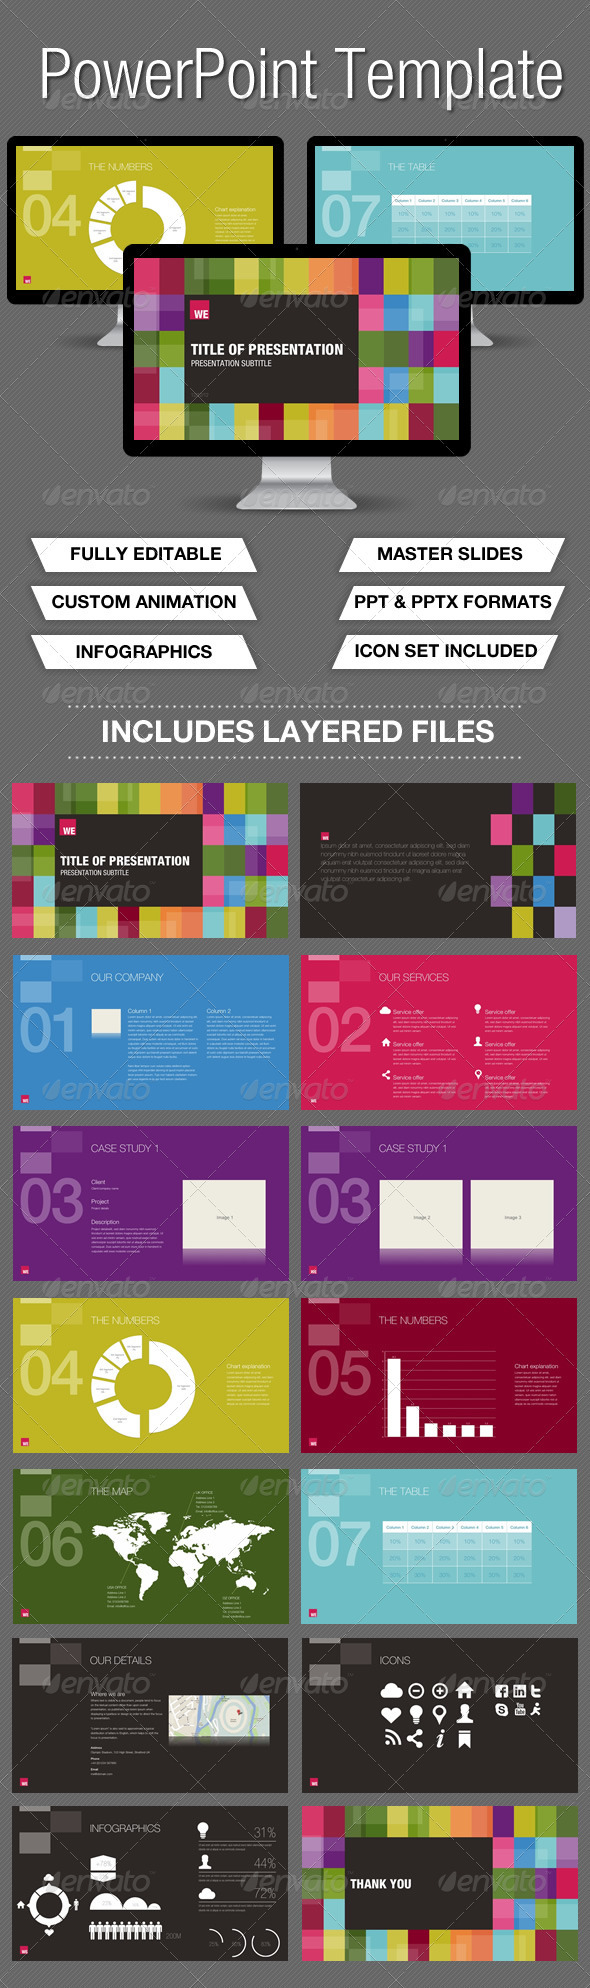 Colour Powerpoint Presentation - Powerpoint Templates Presentation Templates